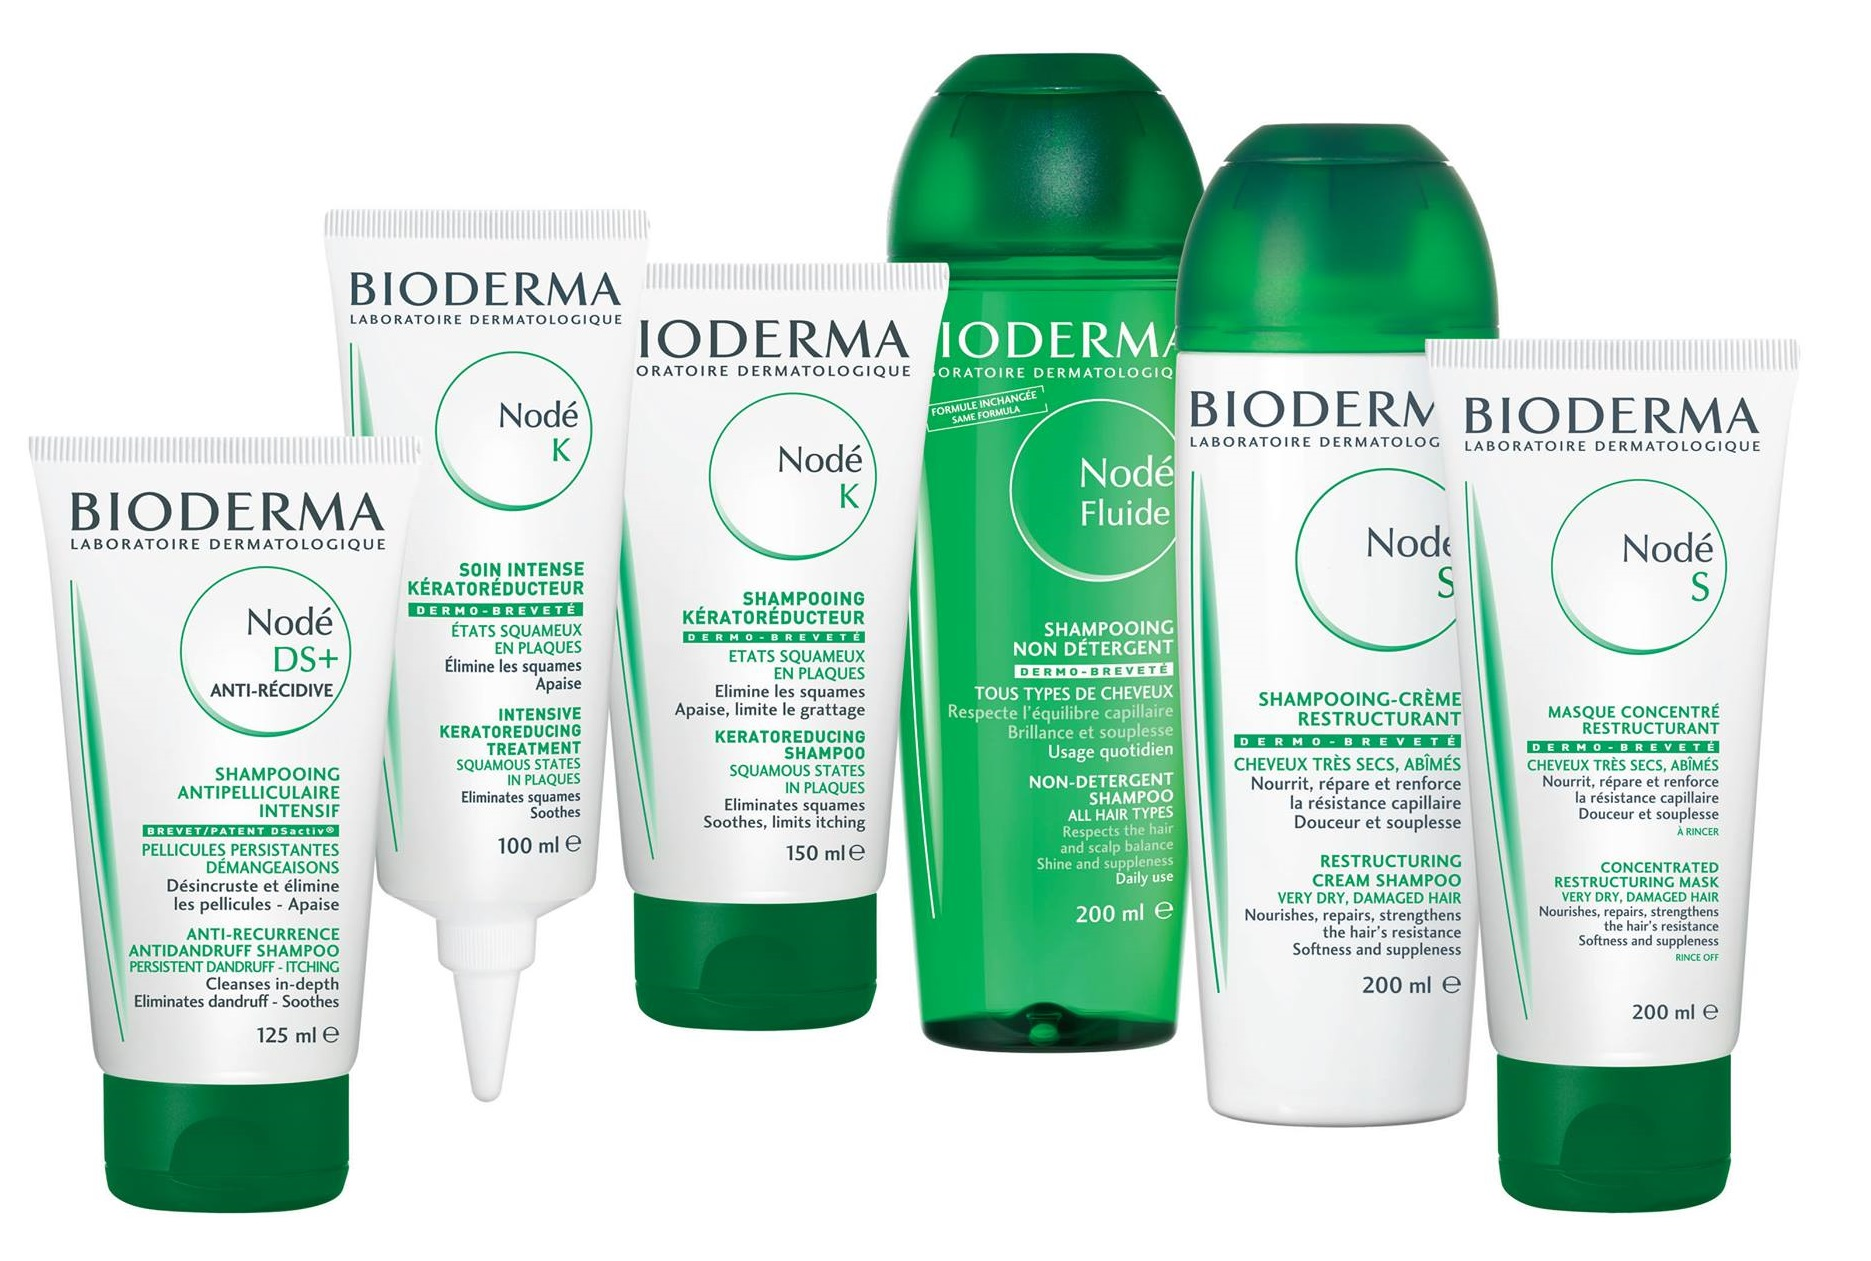 BIODERMA NODE